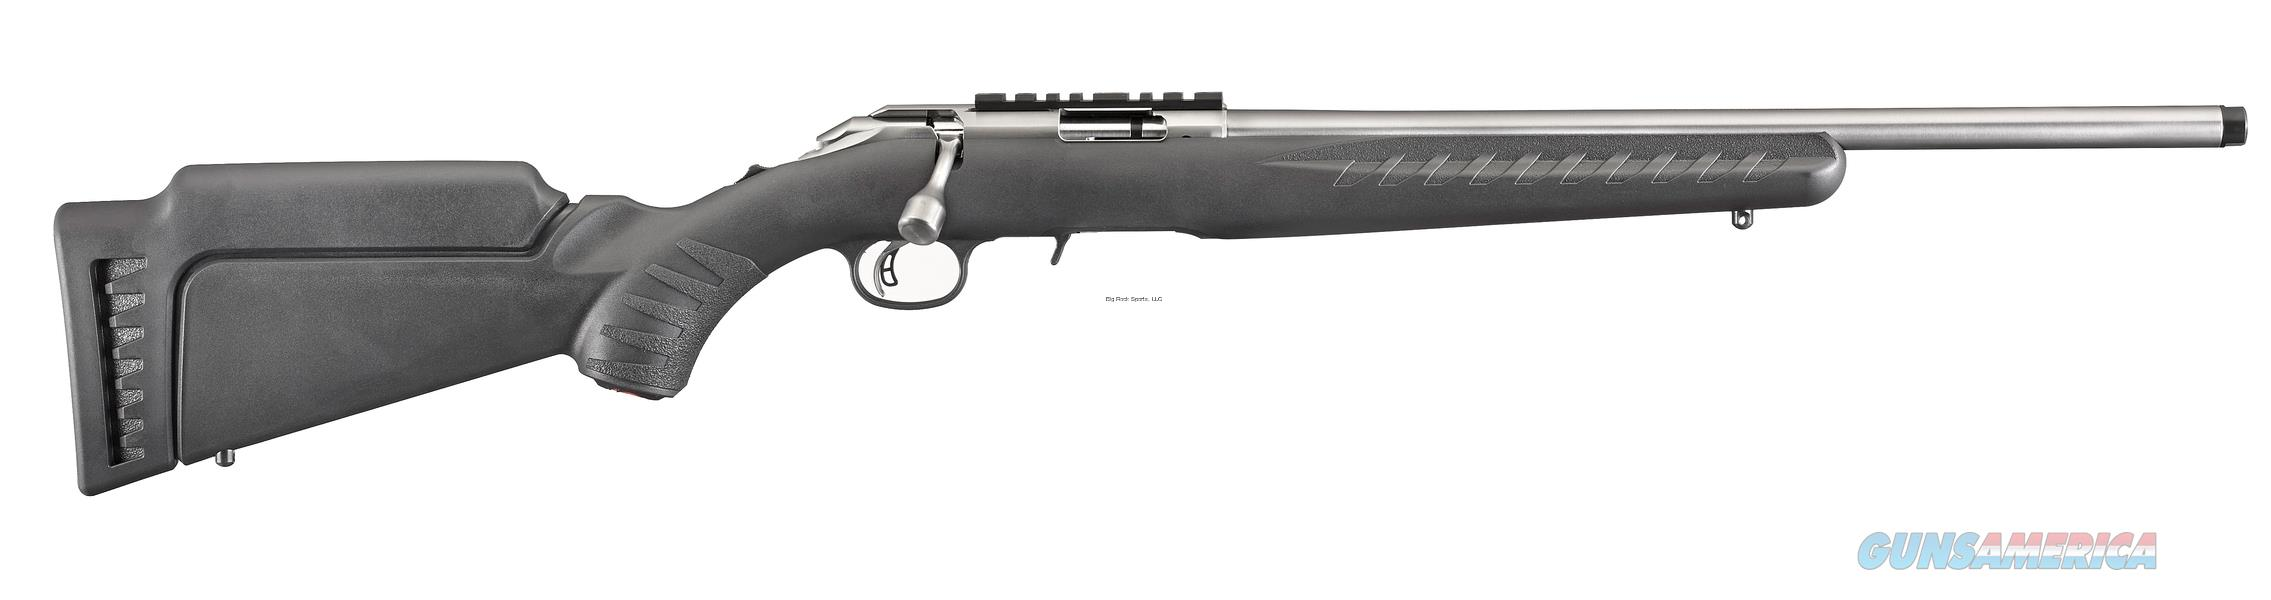 "Ruger 8351 American Rimfire Bolt Action Rifle, 22 LR, 18"" Bbl, 10-Rnd, Satin Stainless, Black Synthetic Stock, Threaded Muzzle LAYAWAY 60 DAYS SAME AS CASH!  Guns > Rifles > Ruger Rifles > American Rifle"